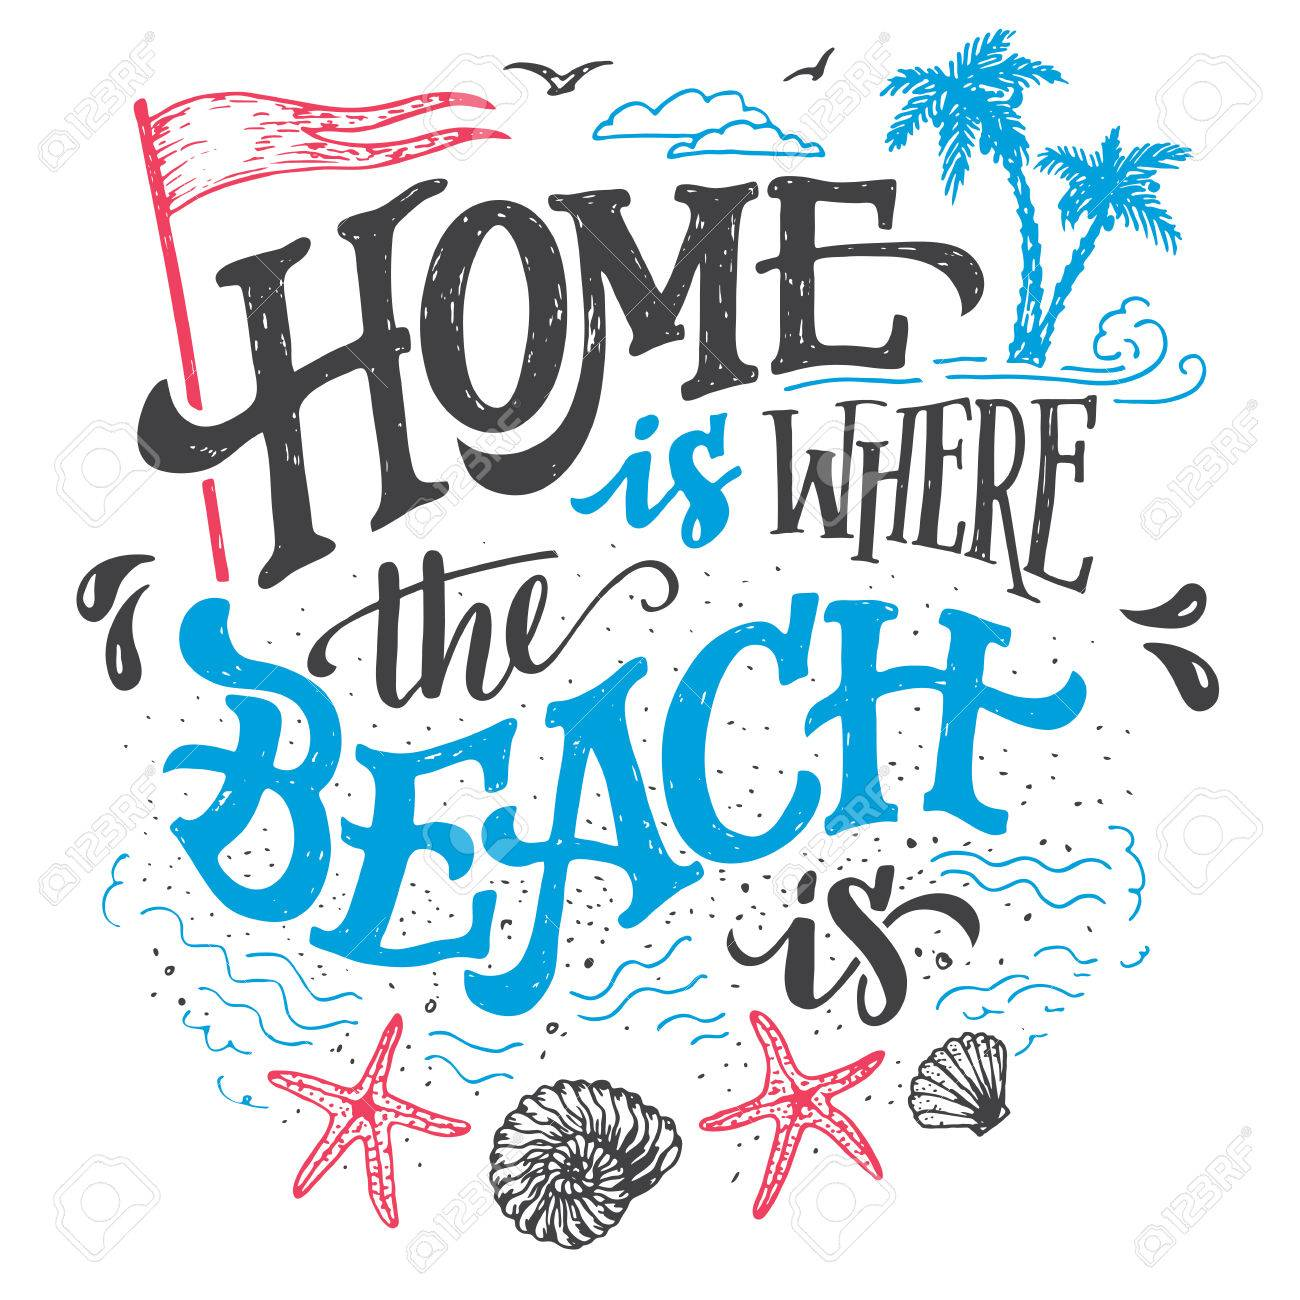 Home is where the beach is. Beach house decor hand drawn sign. Beach sign for rustic wall decor. Beachside cottage hand-lettering quote. Vintage typography illustration isolation on white background - 56479265